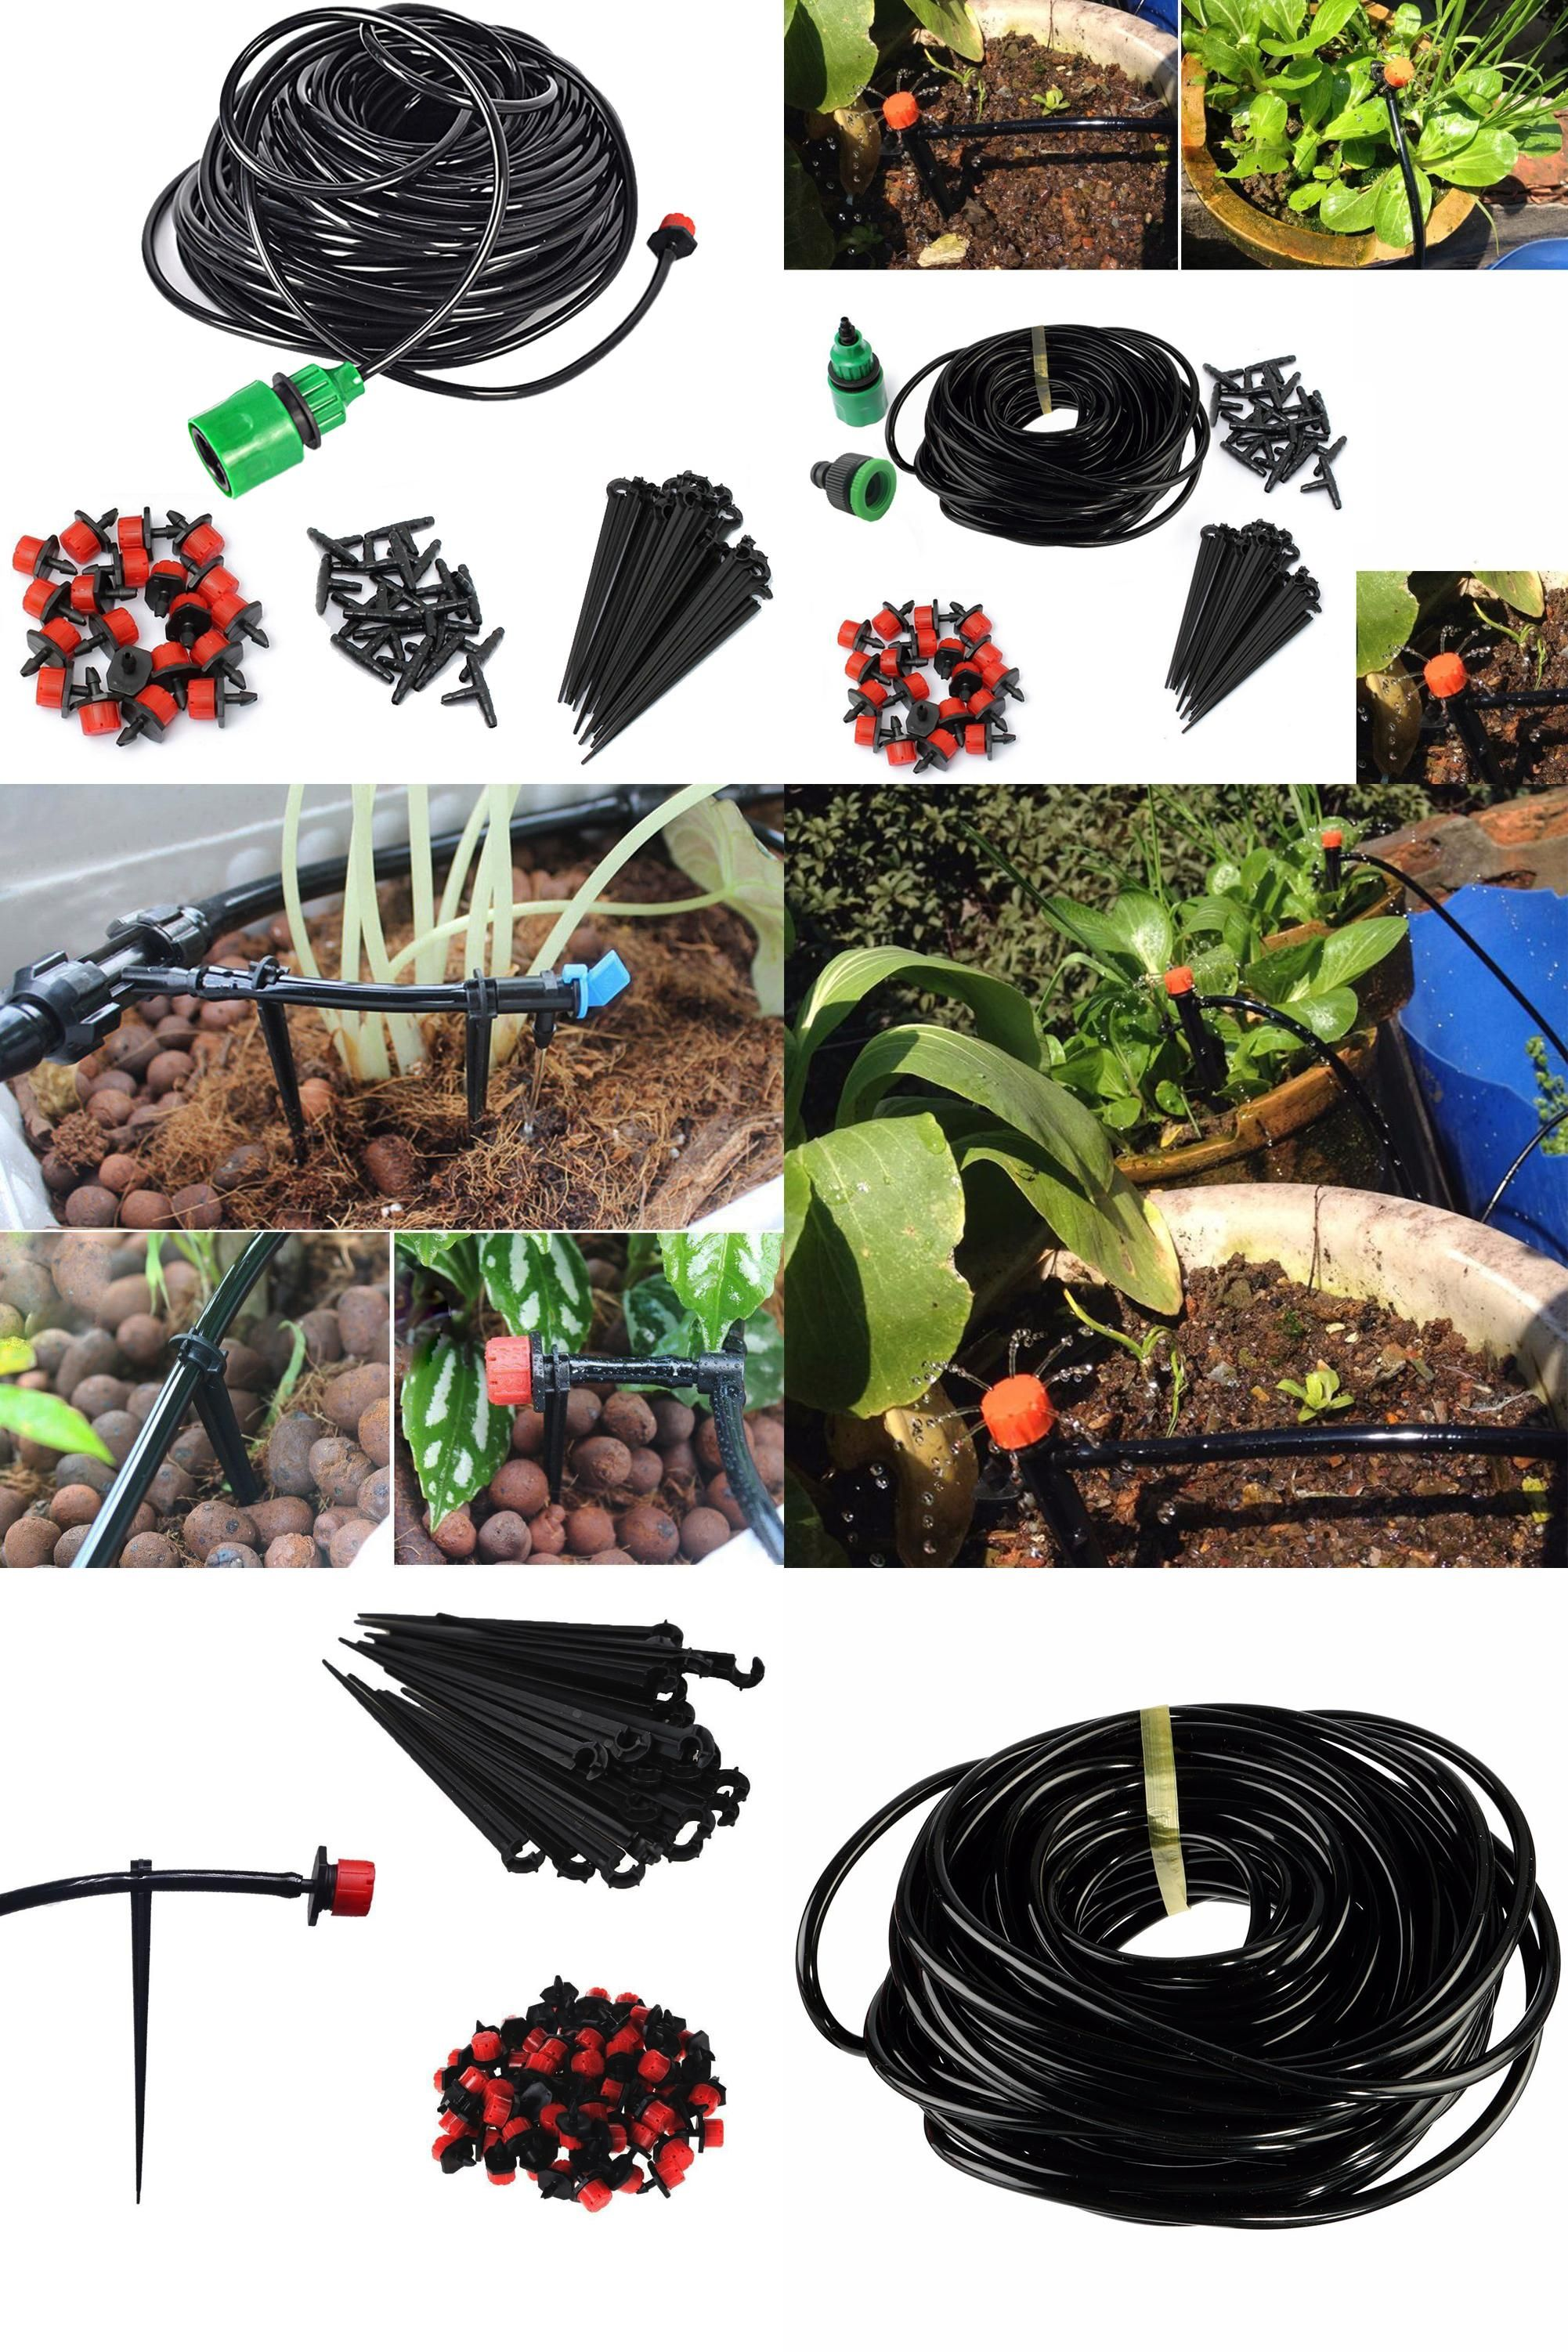 visit to buy] 5m micro drip irrigation kit set plants watering